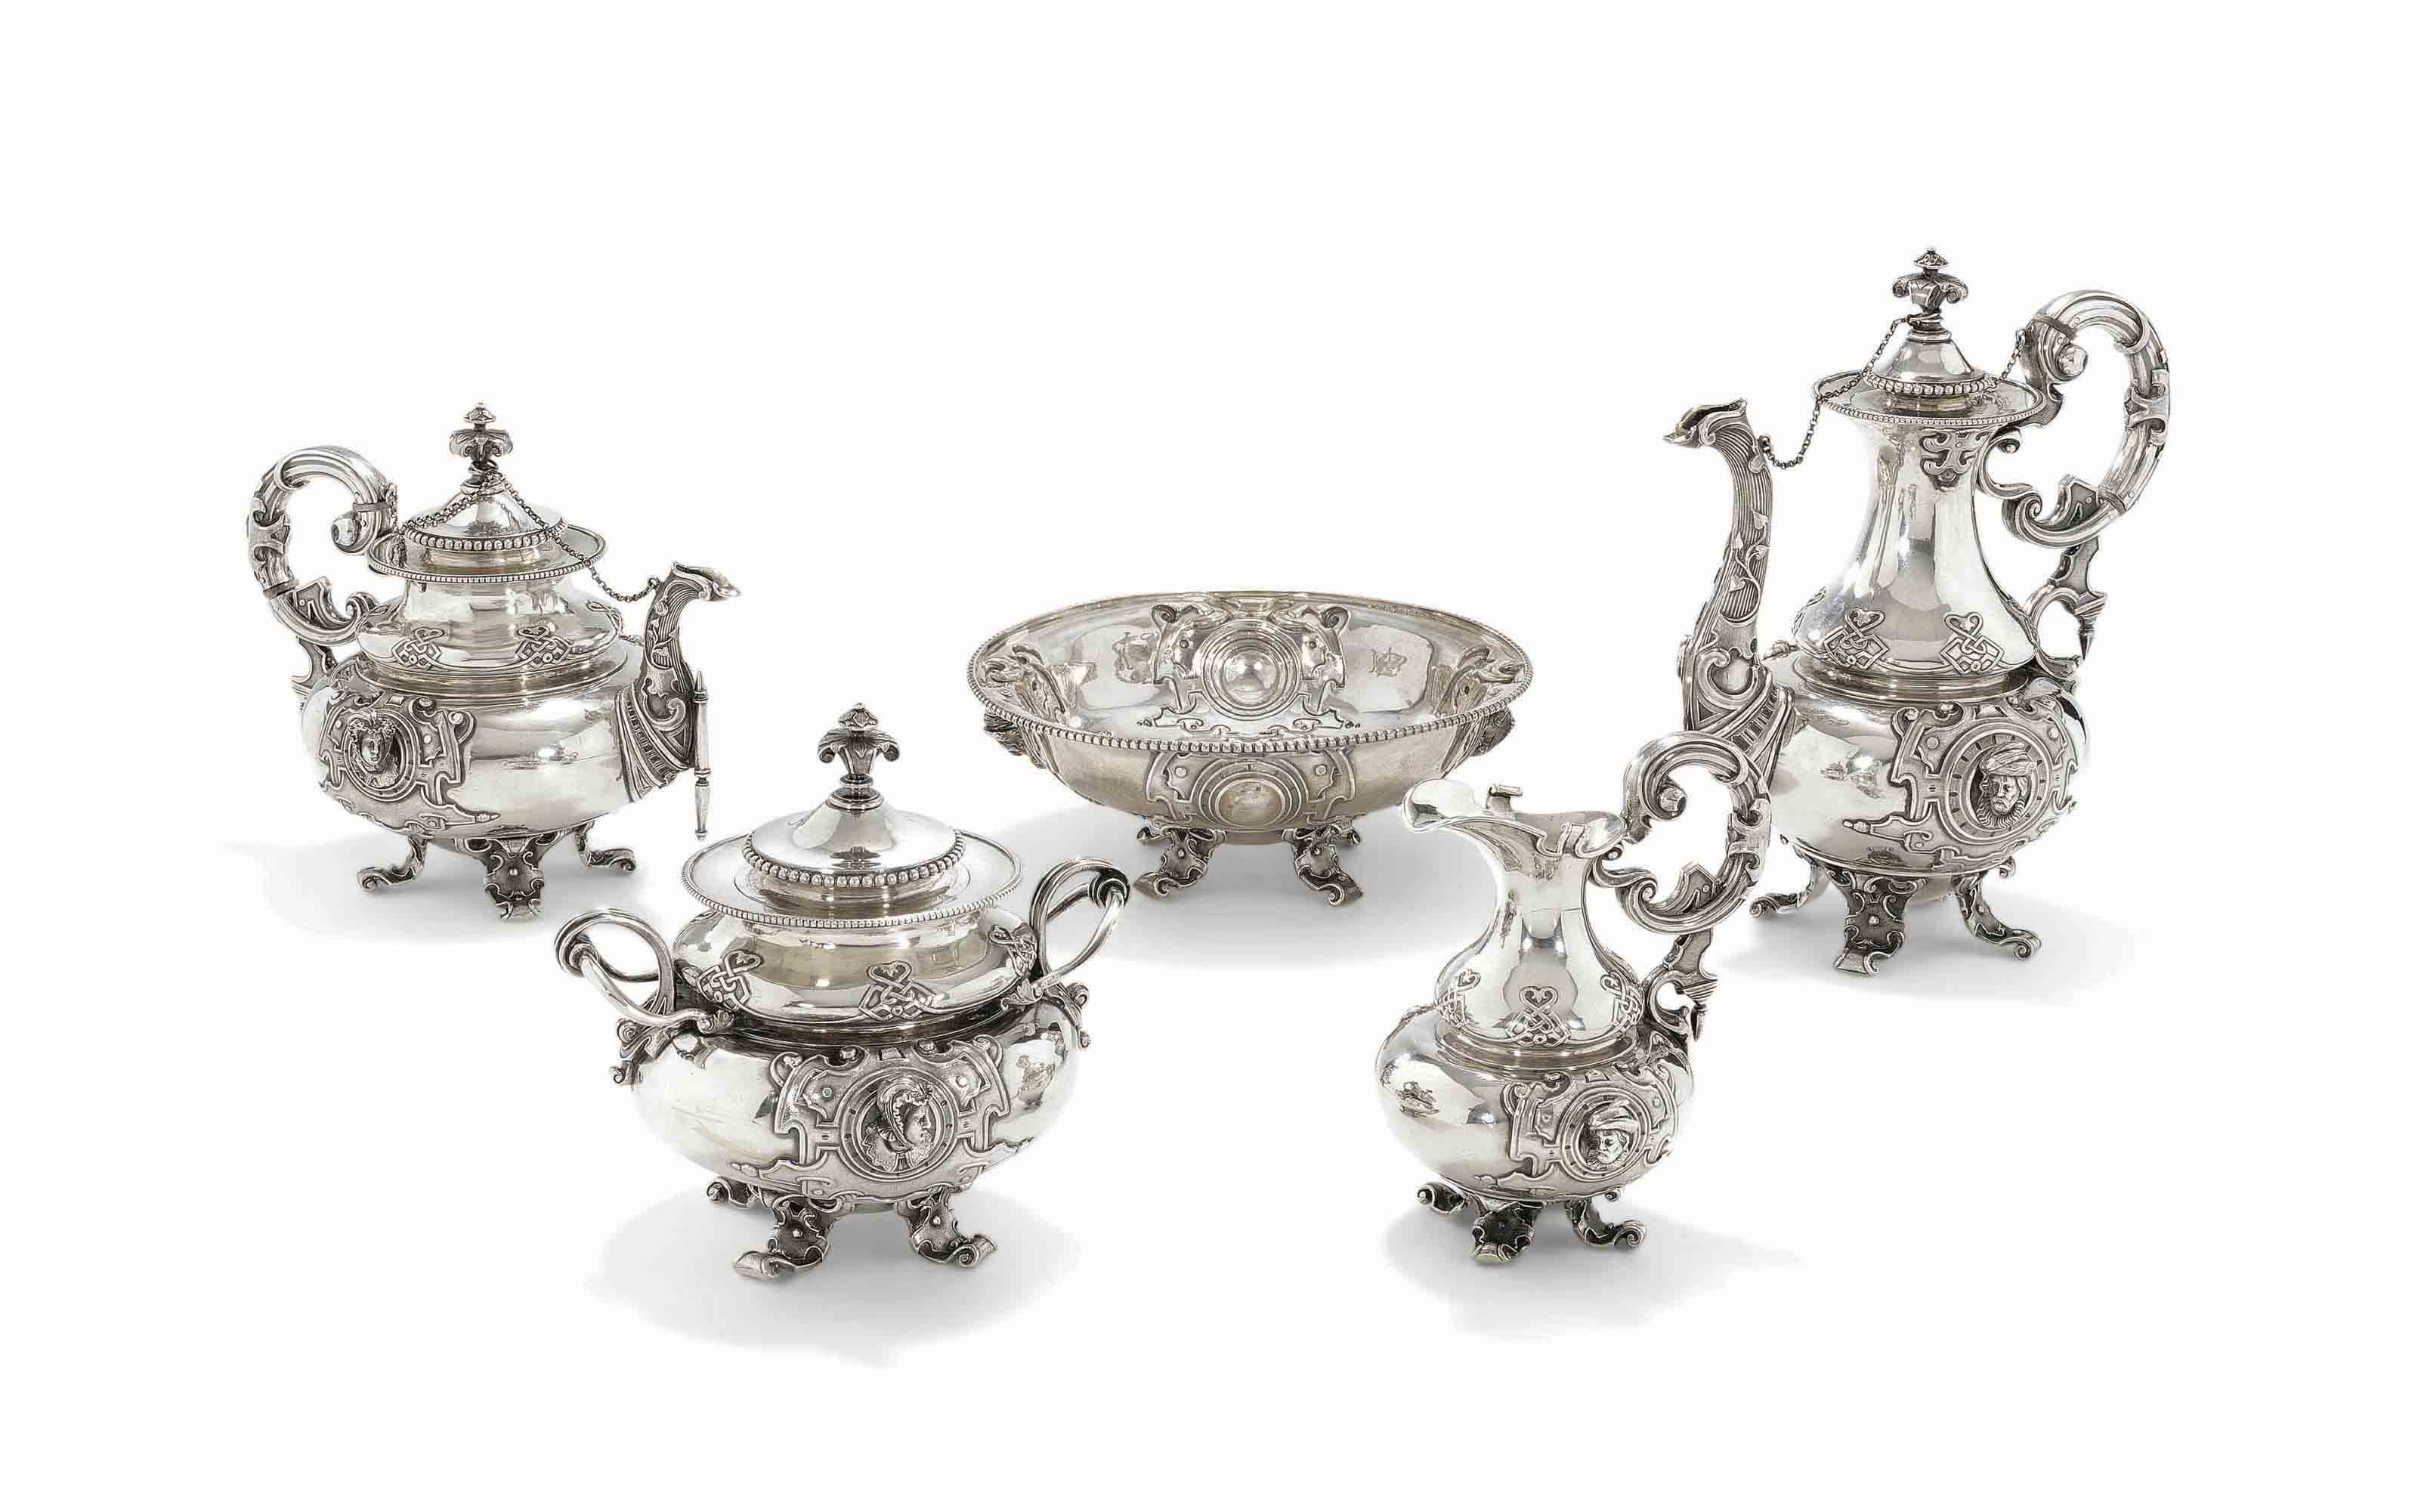 AN UNUSUAL PARCEL-GILT SILVER TEA AND COFFEE SERVICE